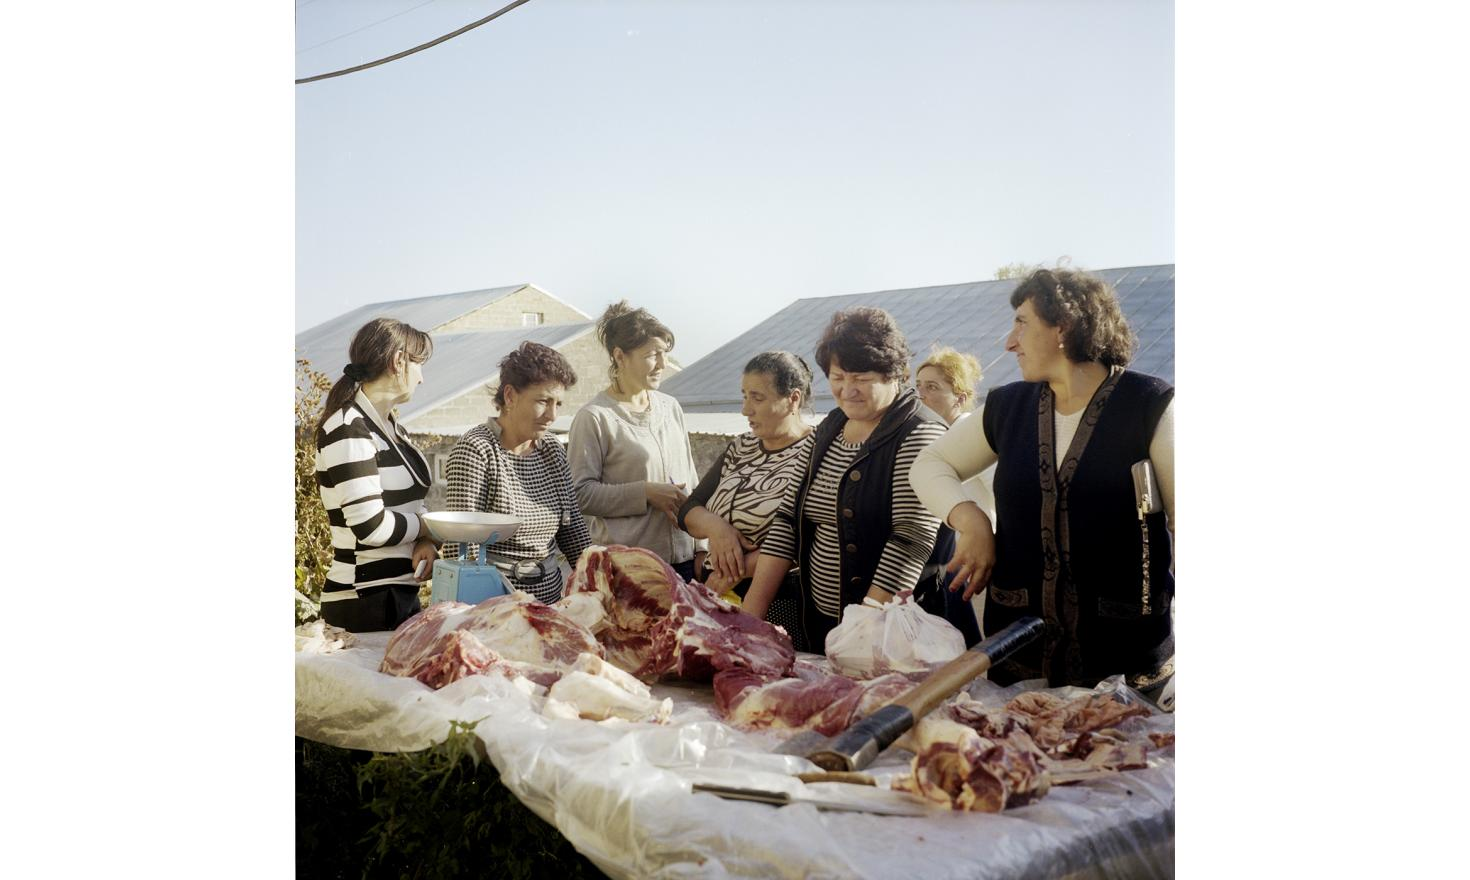 The morning. A butcher just killed two calves of a local woman, so women join to buy meat.